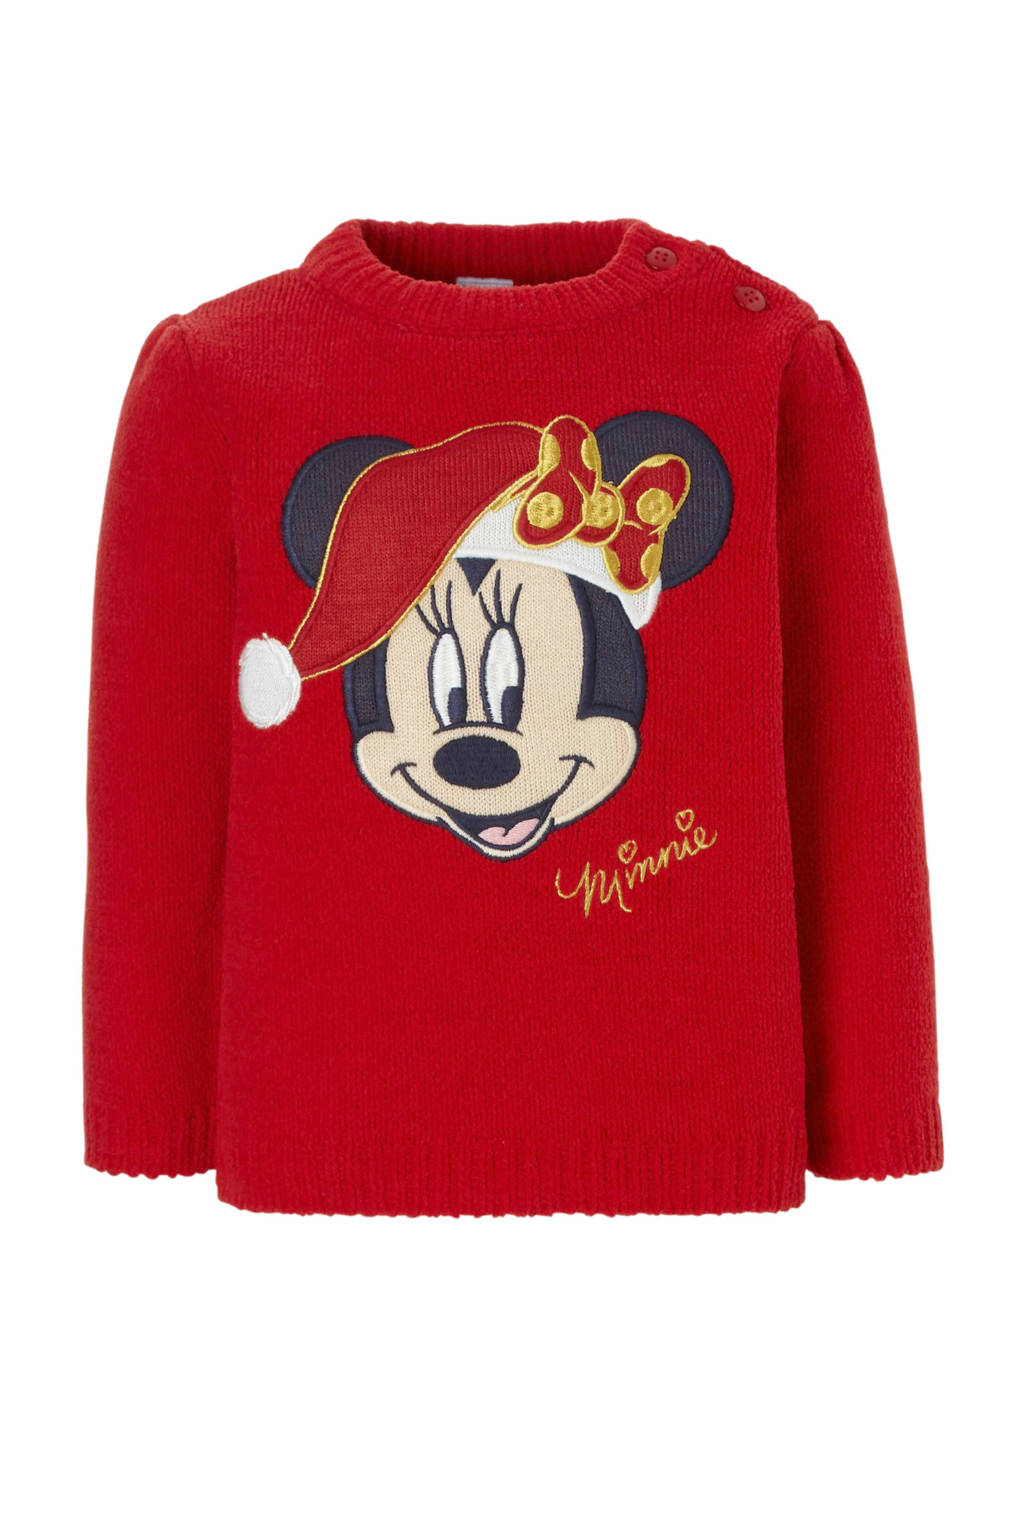 Kersttrui Dames Rood.C A Baby Club Minnie Mouse Kersttrui Rood Wehkamp